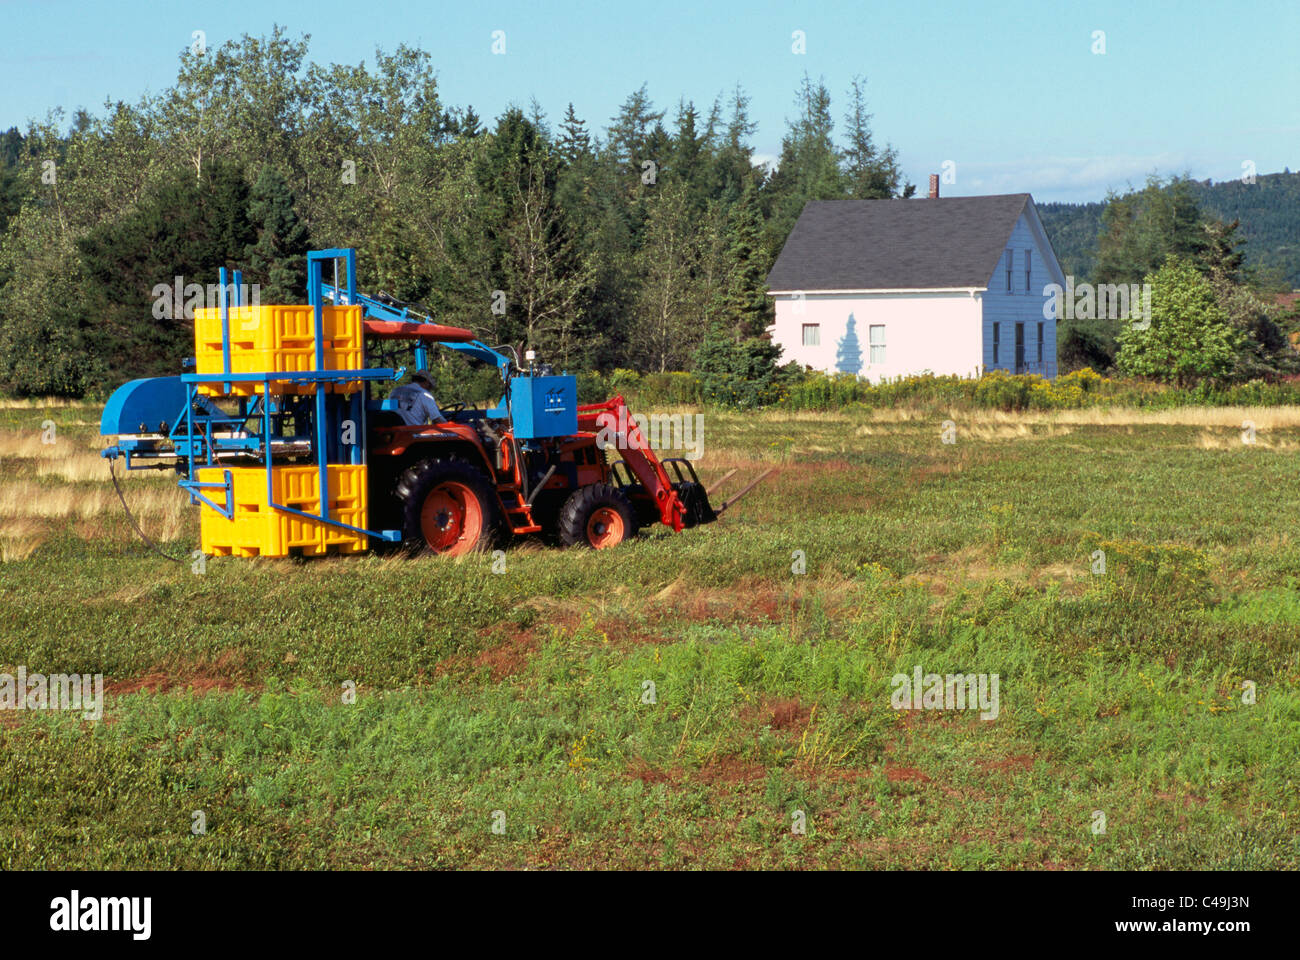 Blueberry Harvester Tractor harvesting Wild Blueberries from Bushes in a Field on Farm near Diligent River, Nova - Stock Image